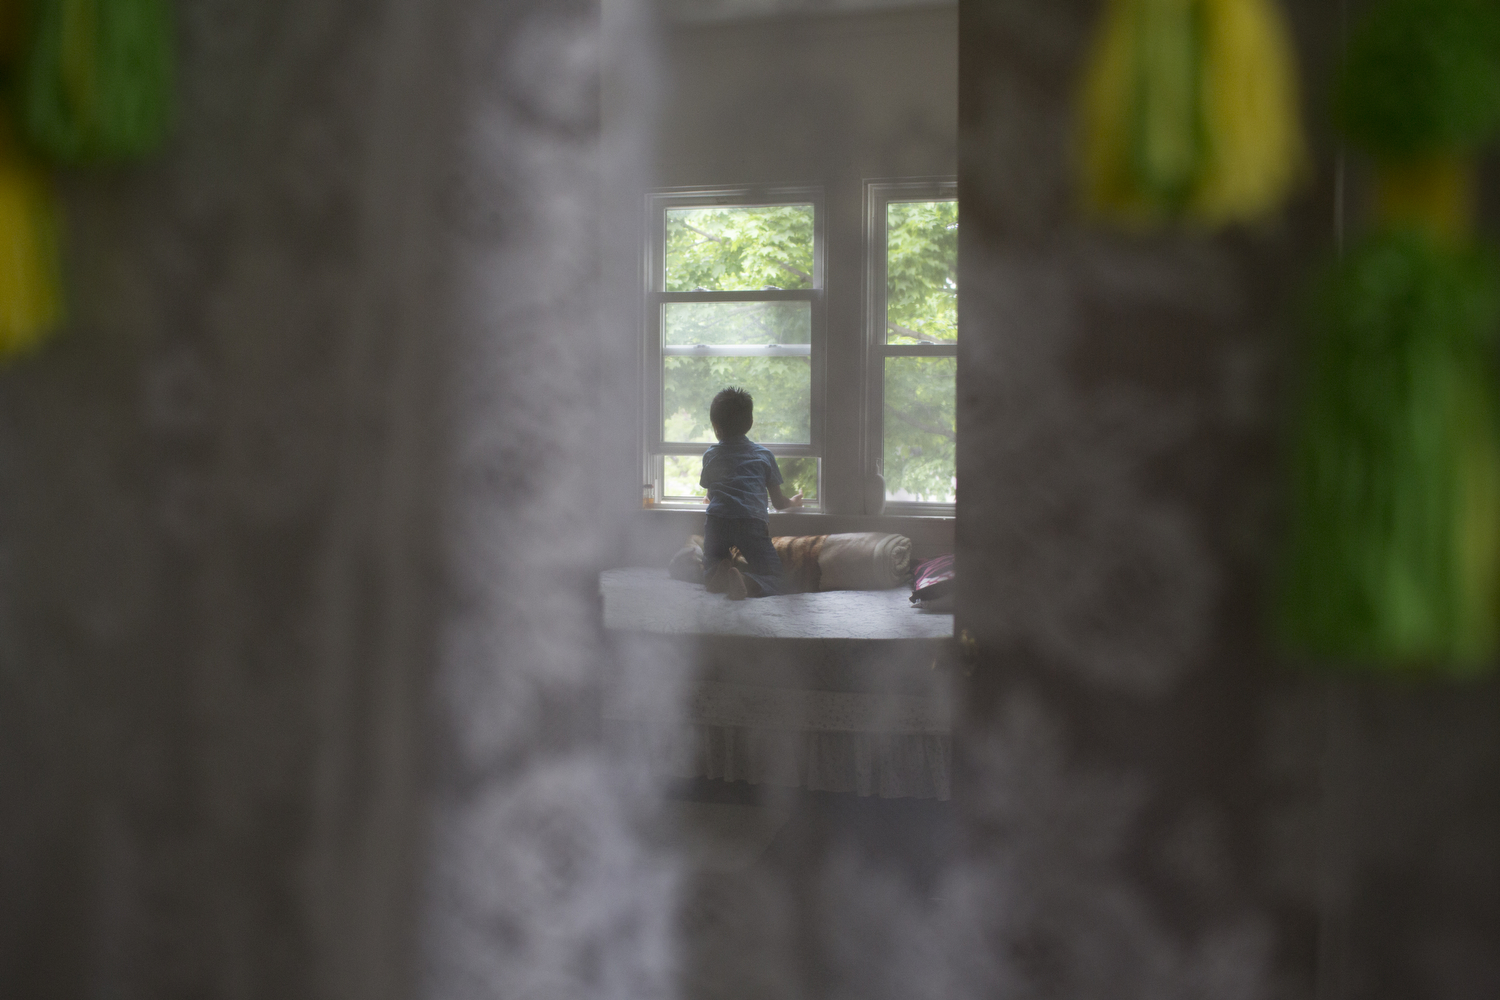 Subash Rai, 10, looks out the window of the upstairs bedroom of his house awaiting his next adventure, Rochester, N.Y., May 16, 2016.